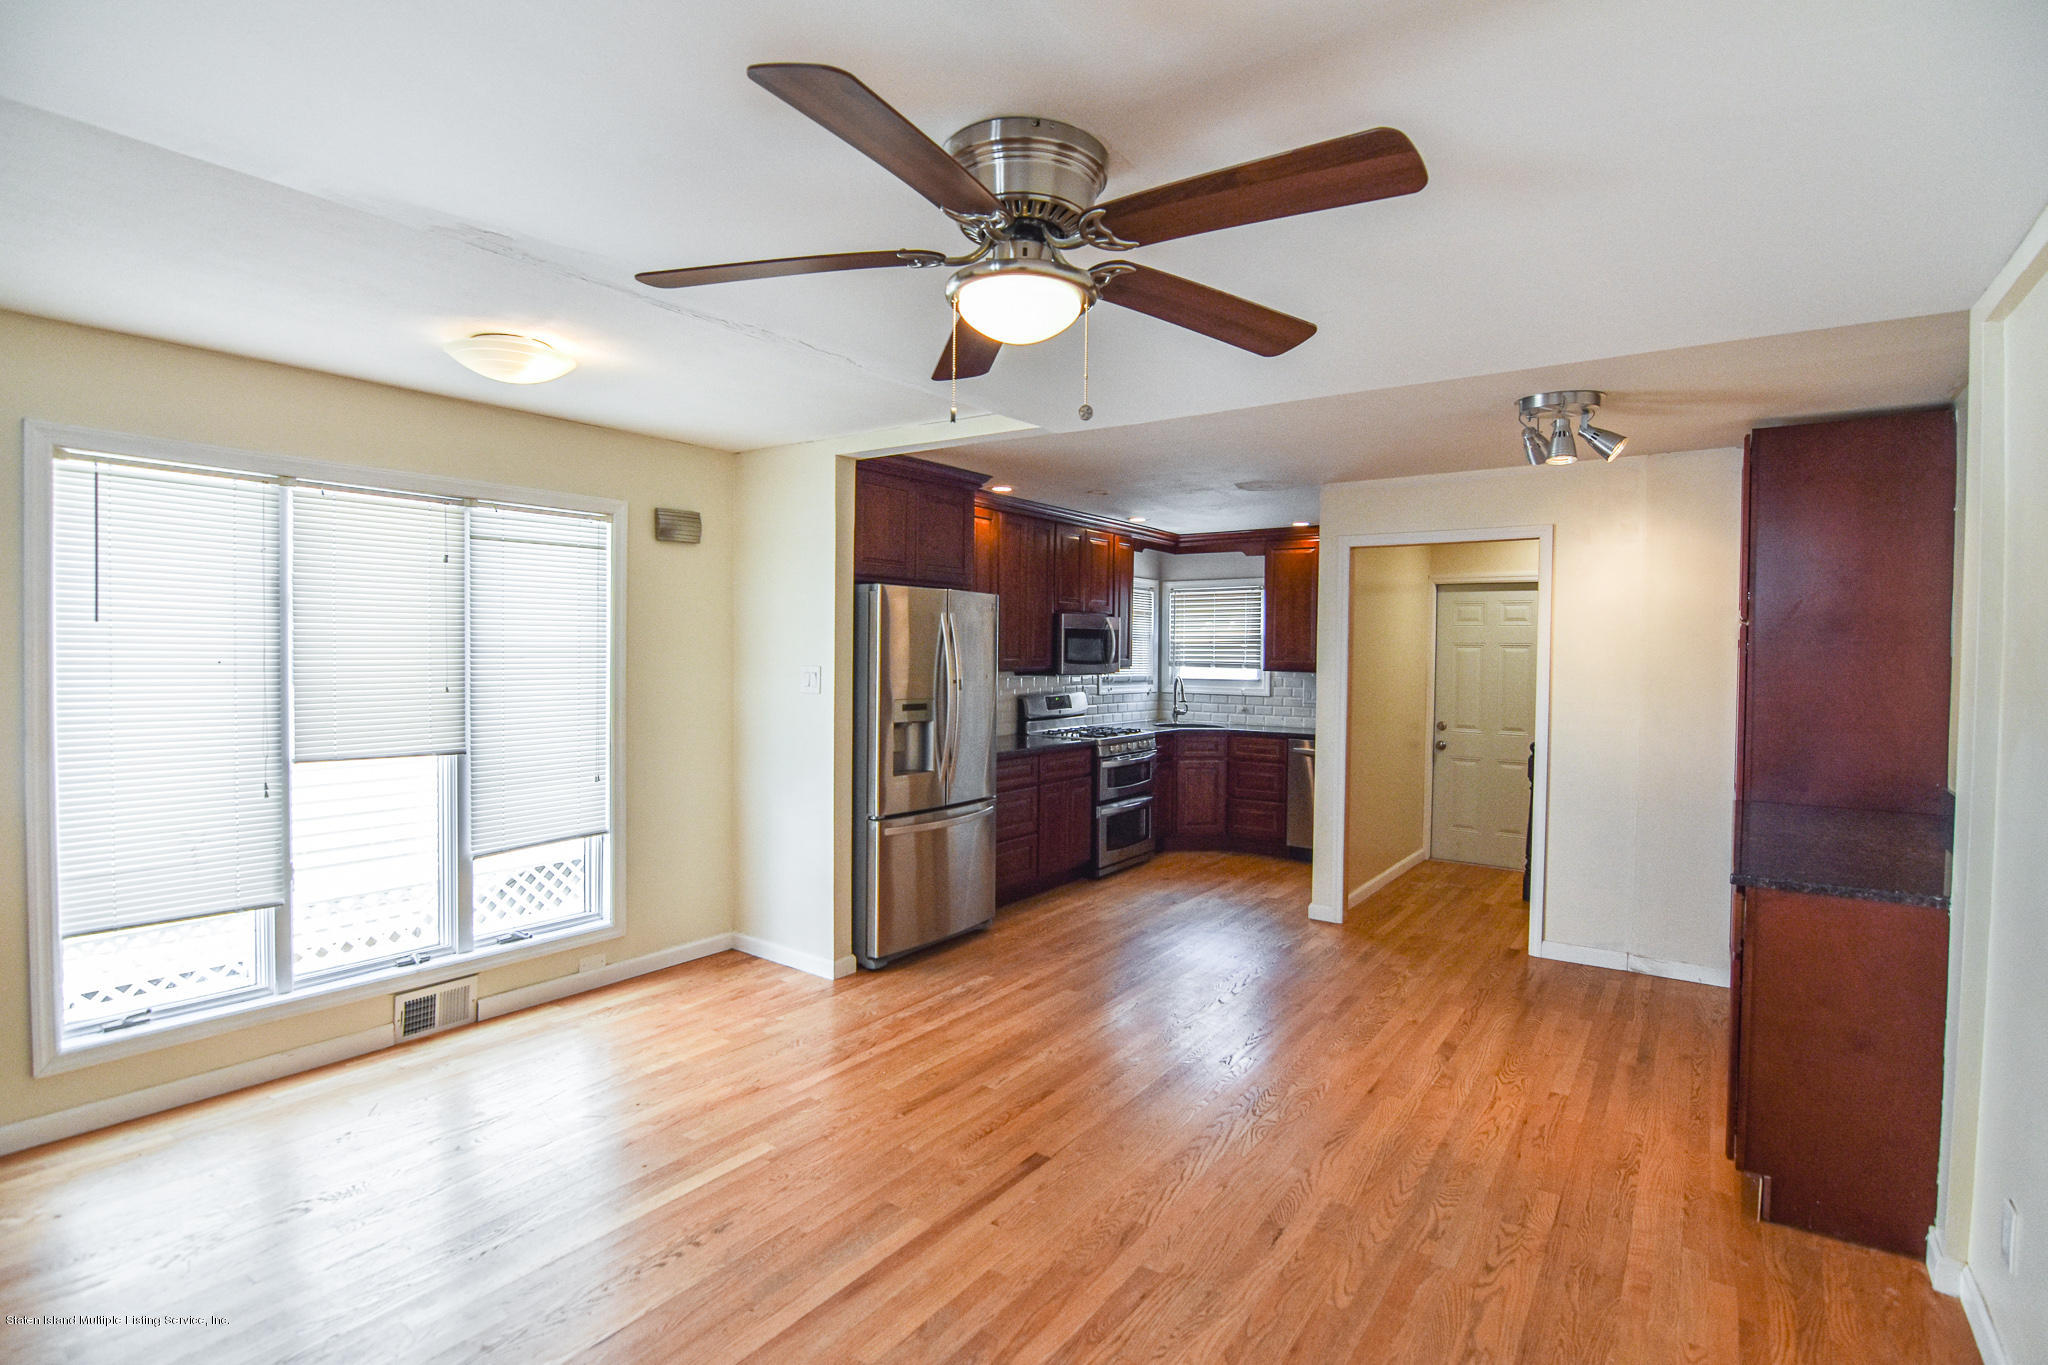 Single Family - Semi-Attached 12 Ebey Lane  Staten Island, NY 10312, MLS-1131132-4